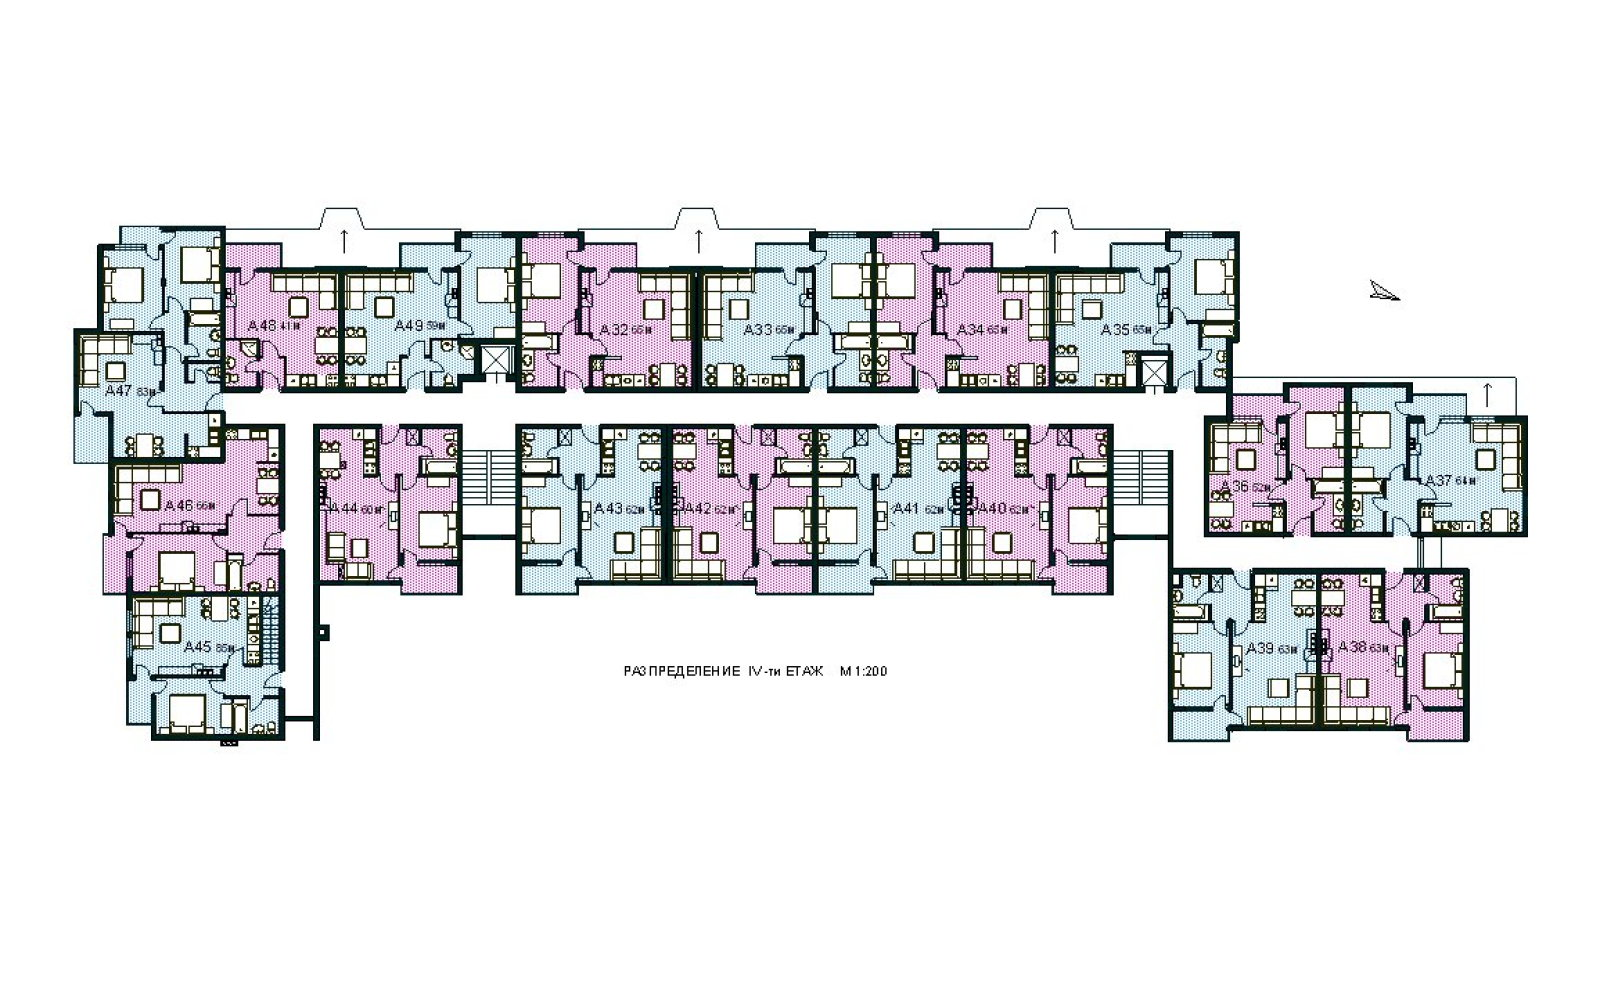 Apartment Complex Building Plans Of Apartment Complex Floor Plans Find House Plans